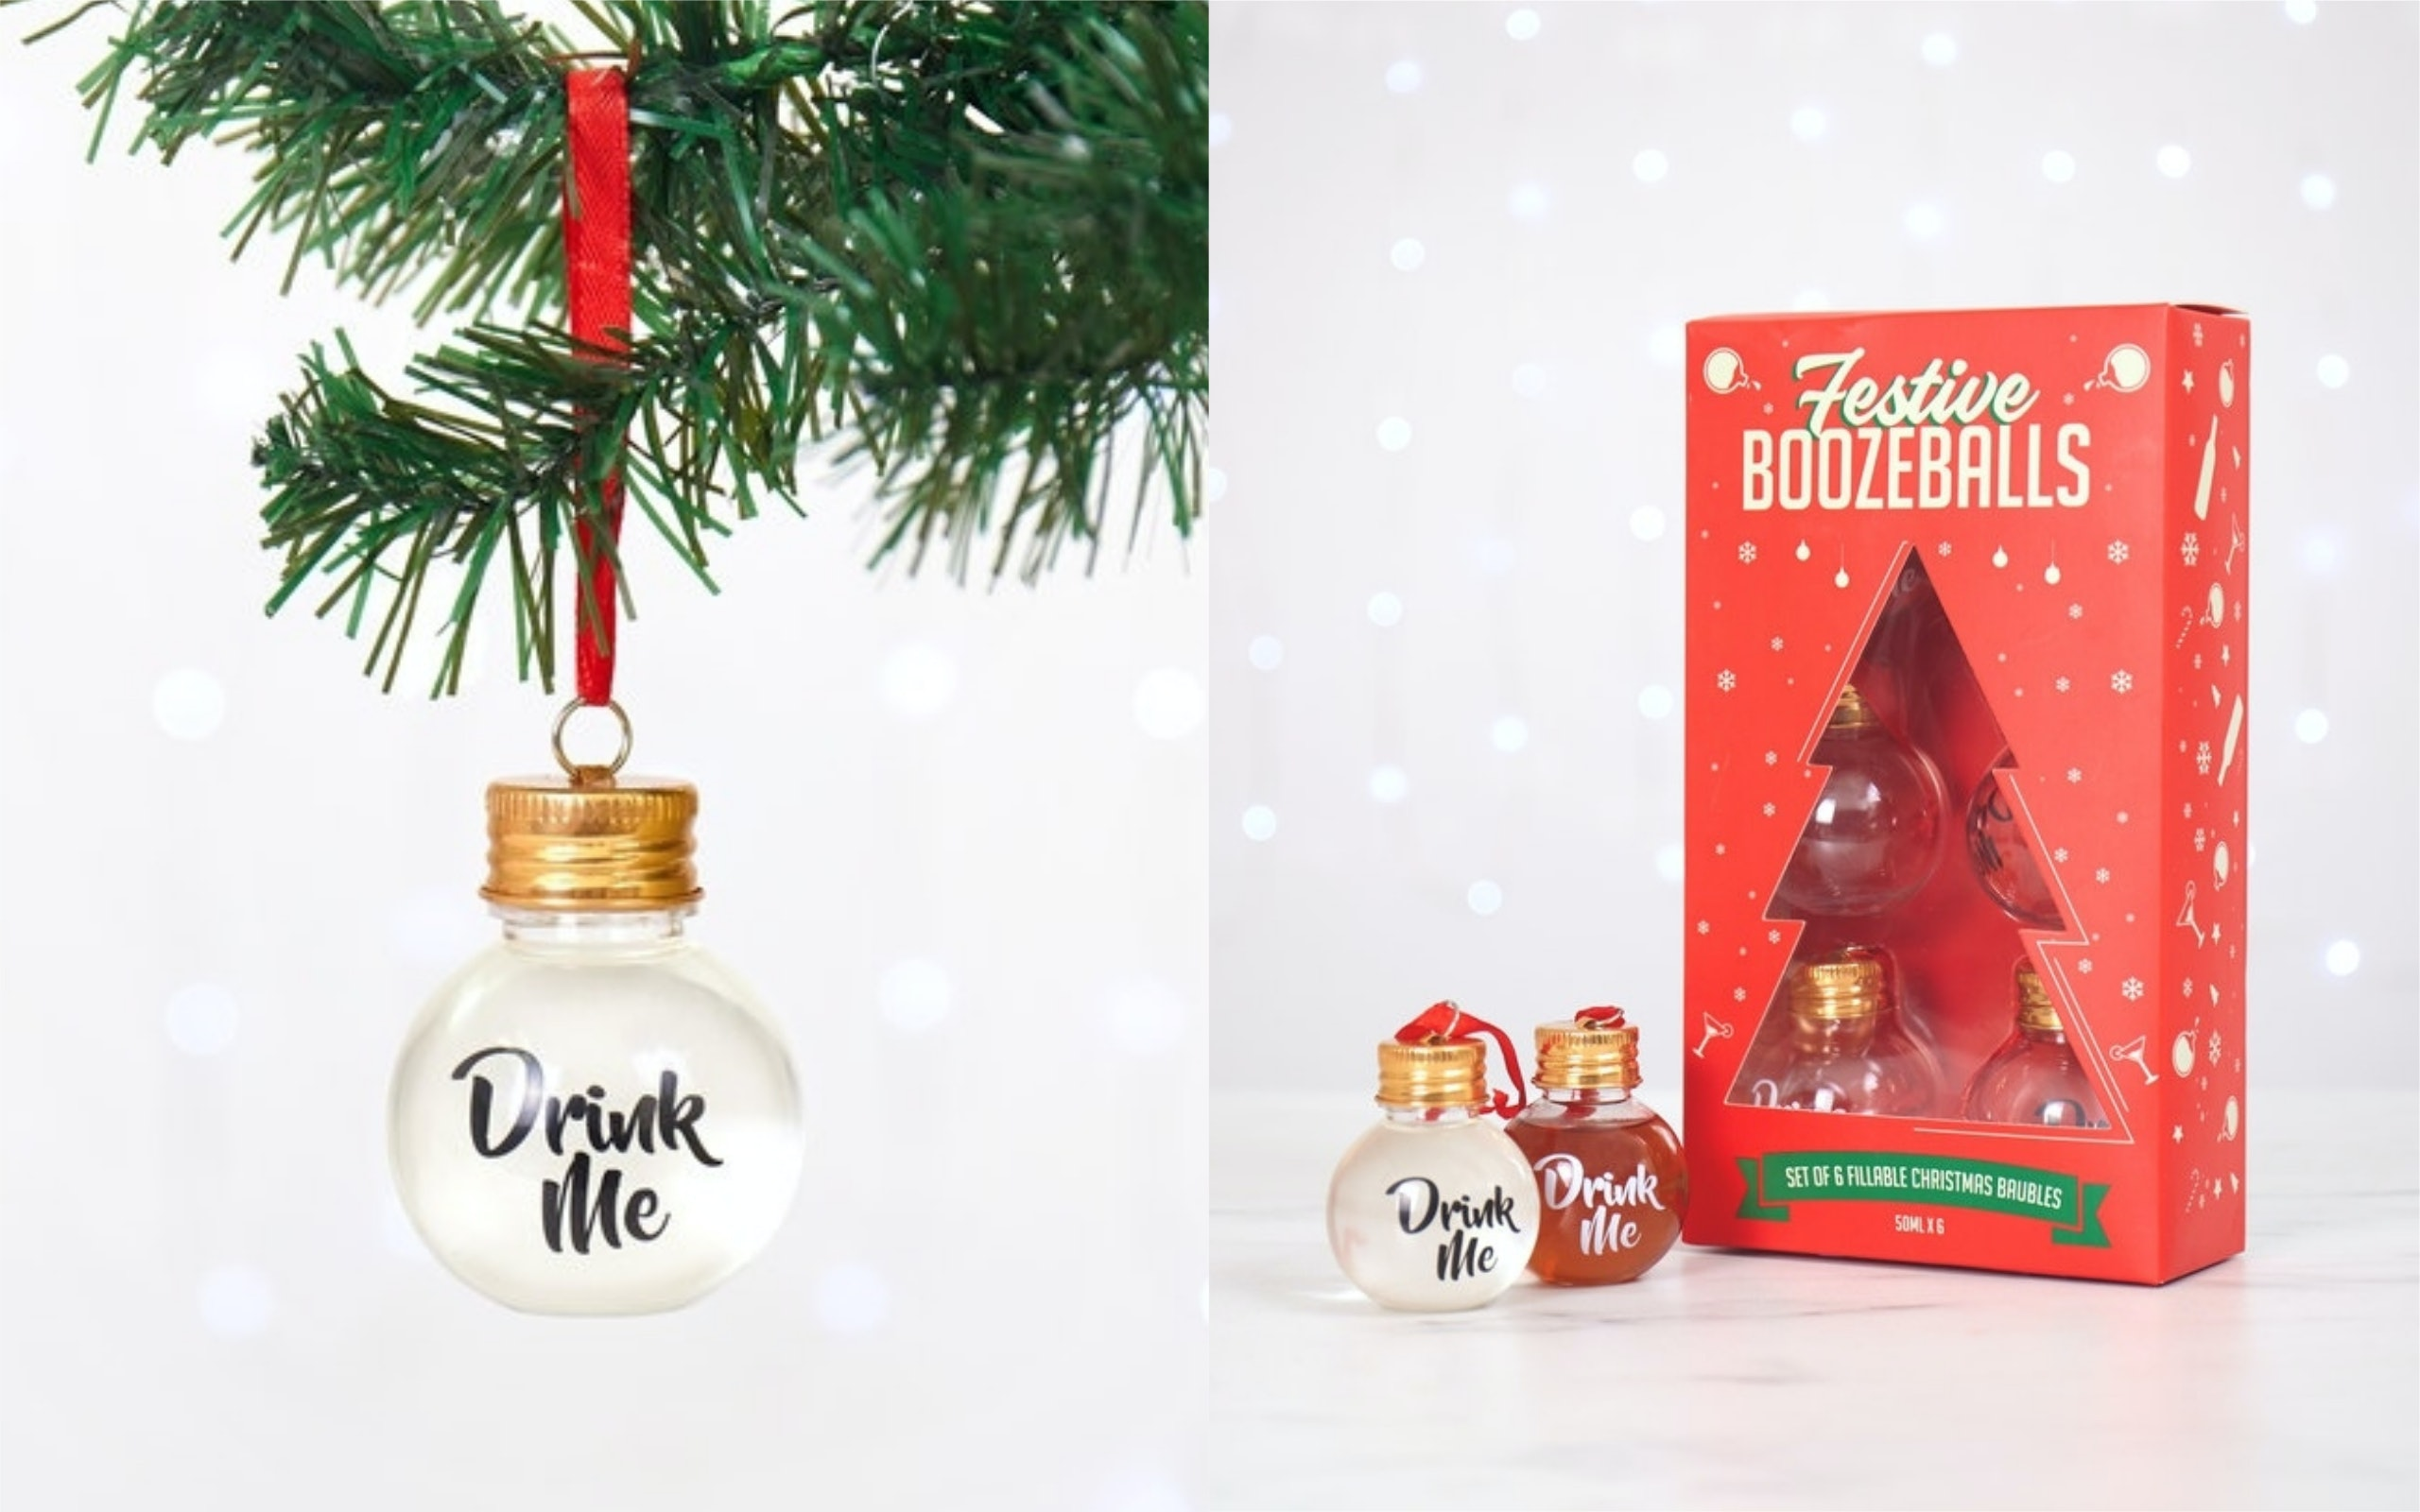 Festive Boozeballs Are Christmas Tree Ornaments You Can Fill With